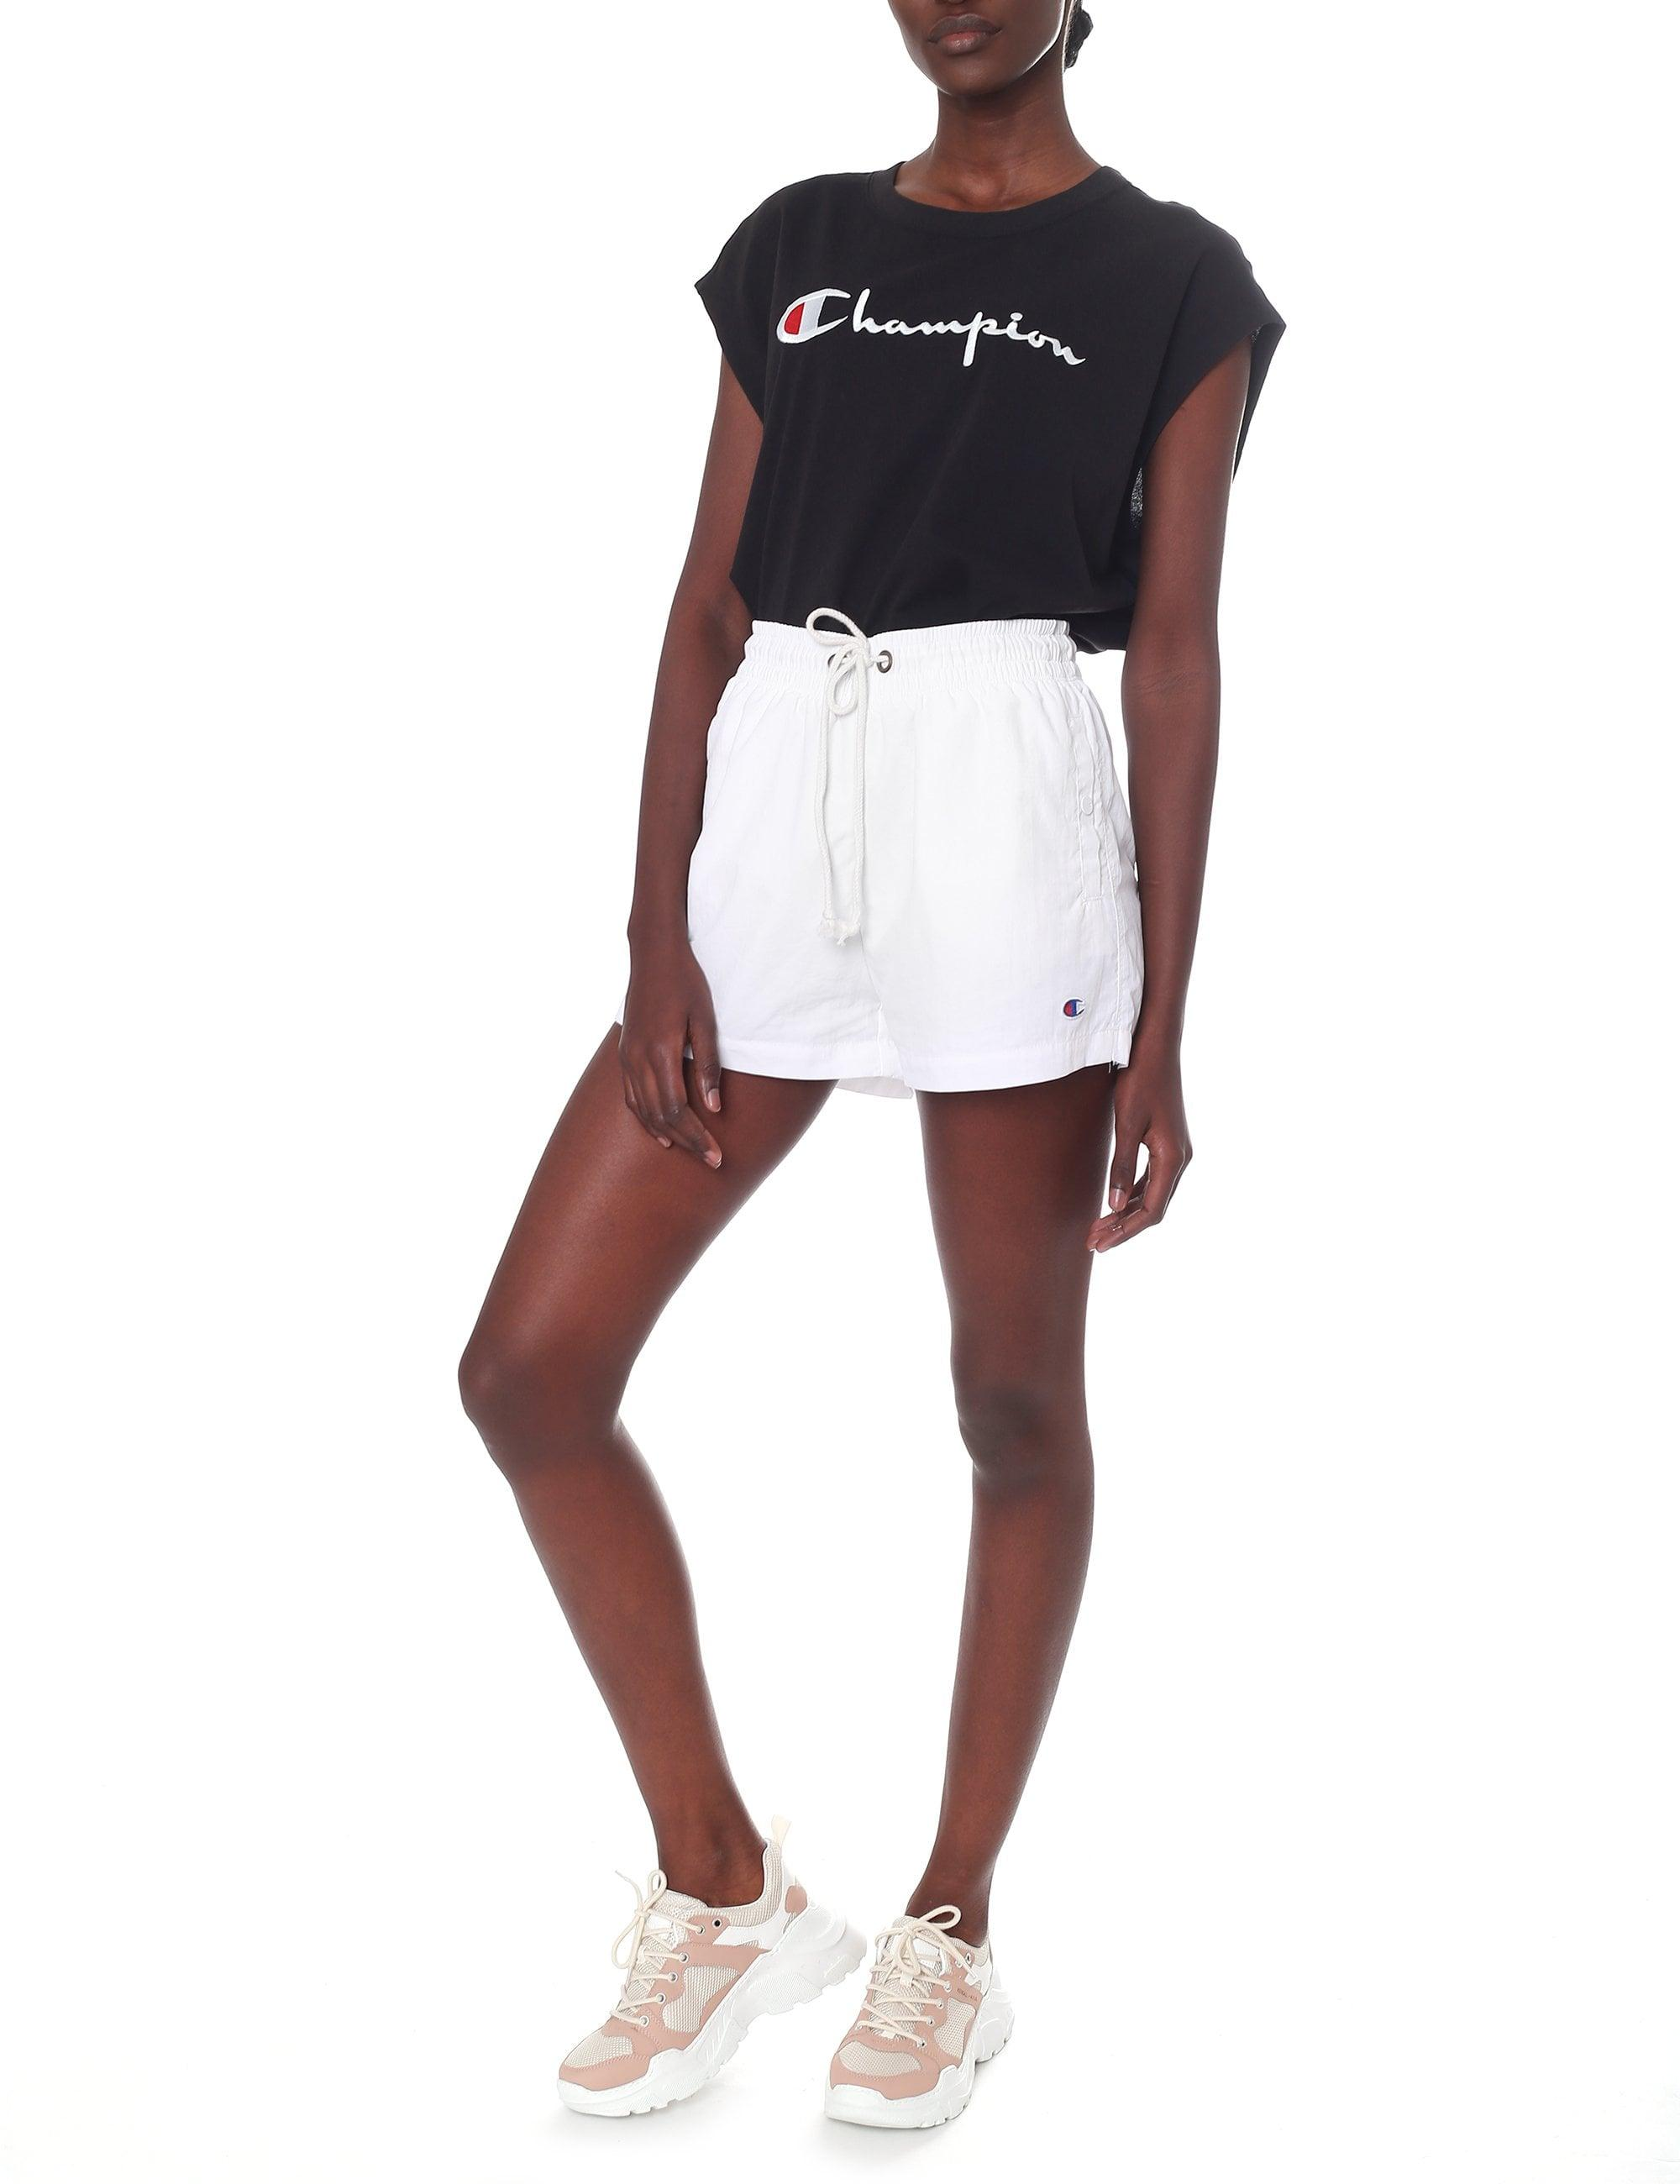 09a739091bc Champion Oversized Script Logo Cropped Tank Top in Black - Lyst